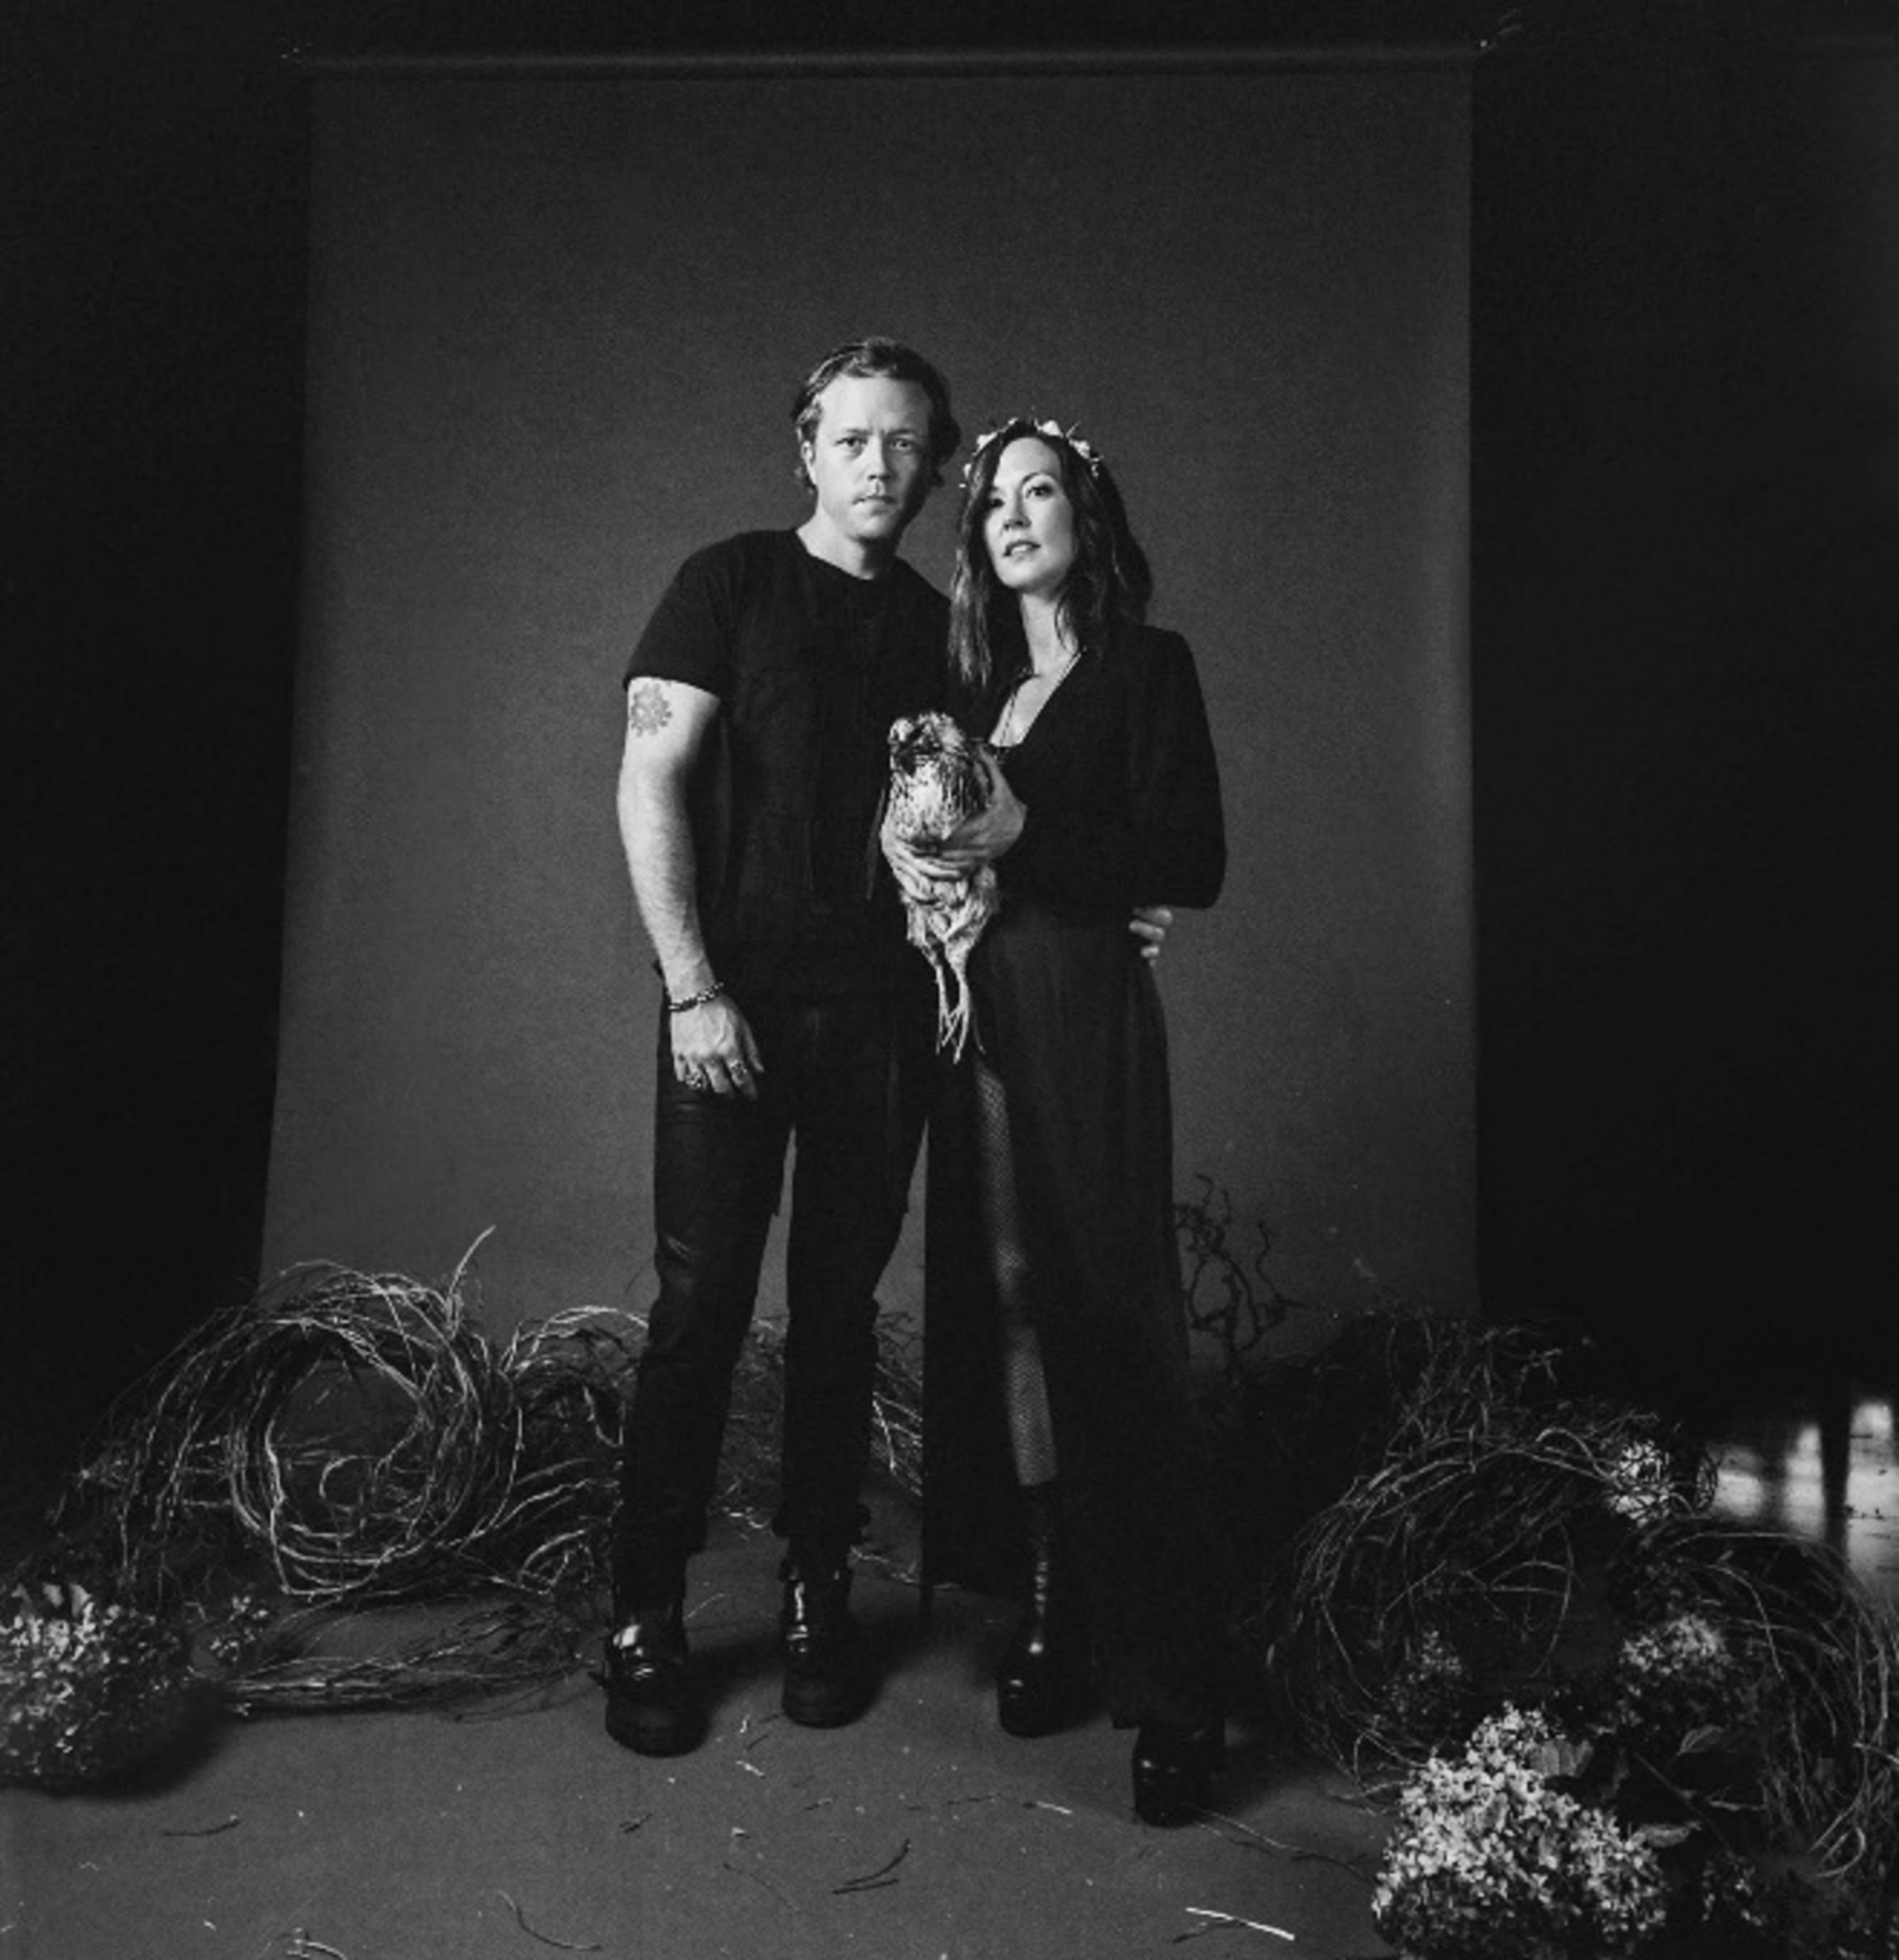 Cola Concerts Presents Jason Isbell and Amanda Shires Live